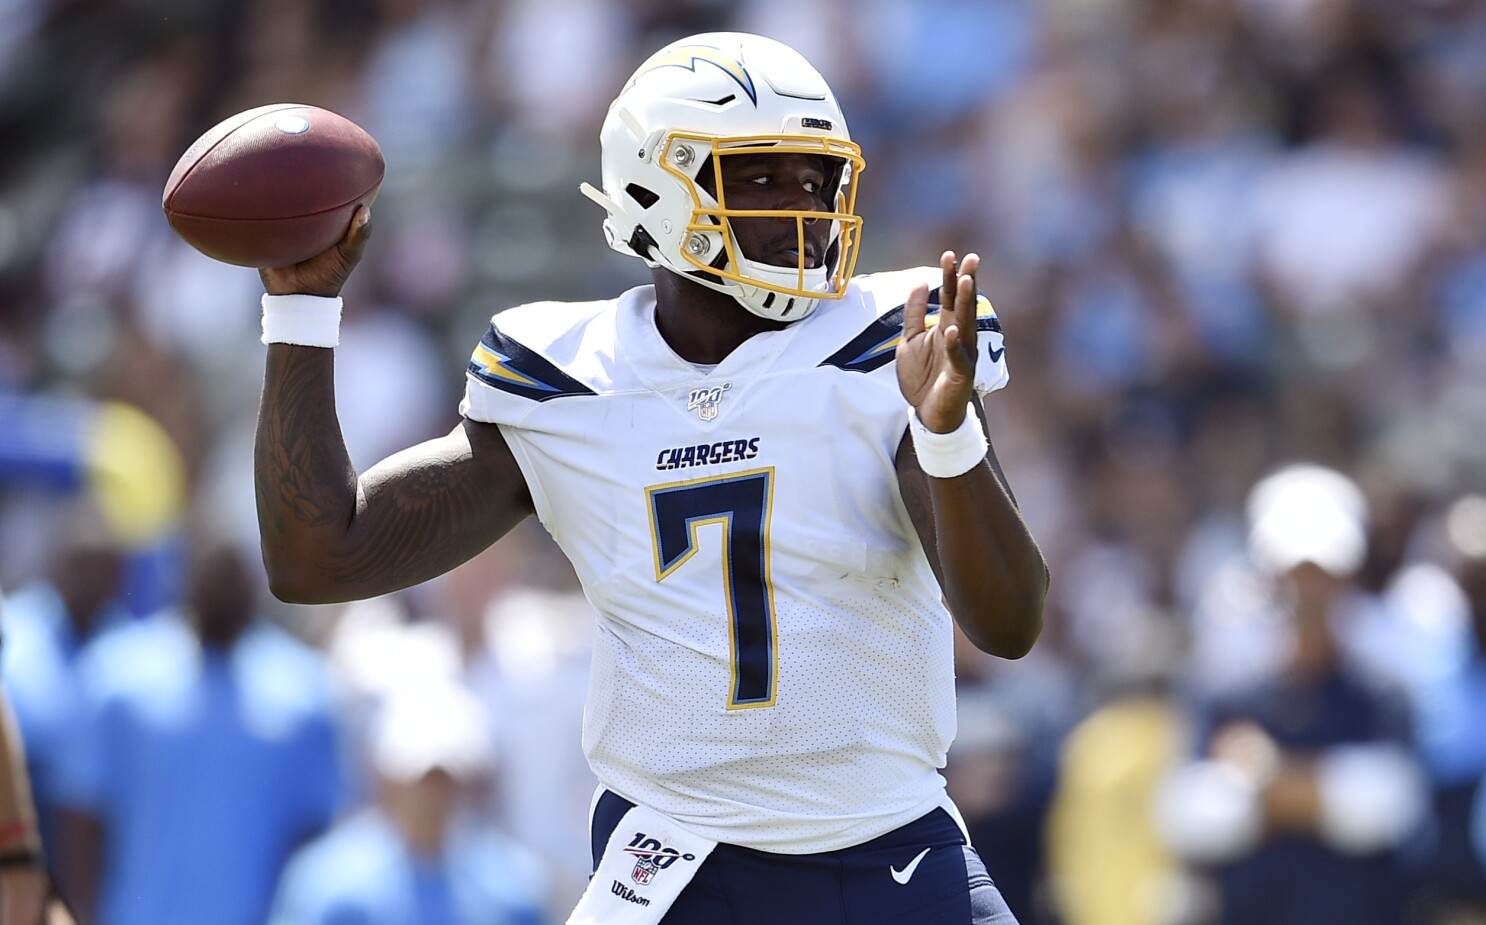 Cardale Jones must pass more tests to make Chargers' roster